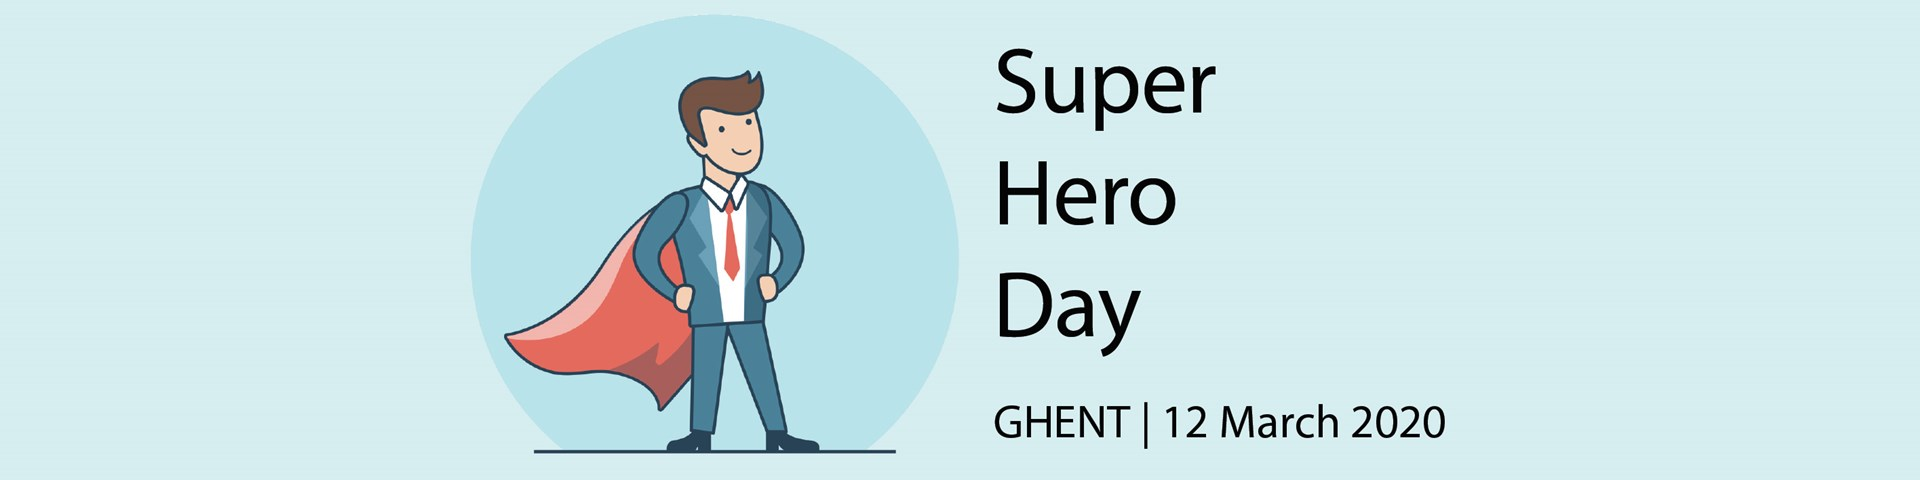 Intrum Belgium Super Hero Day 2020